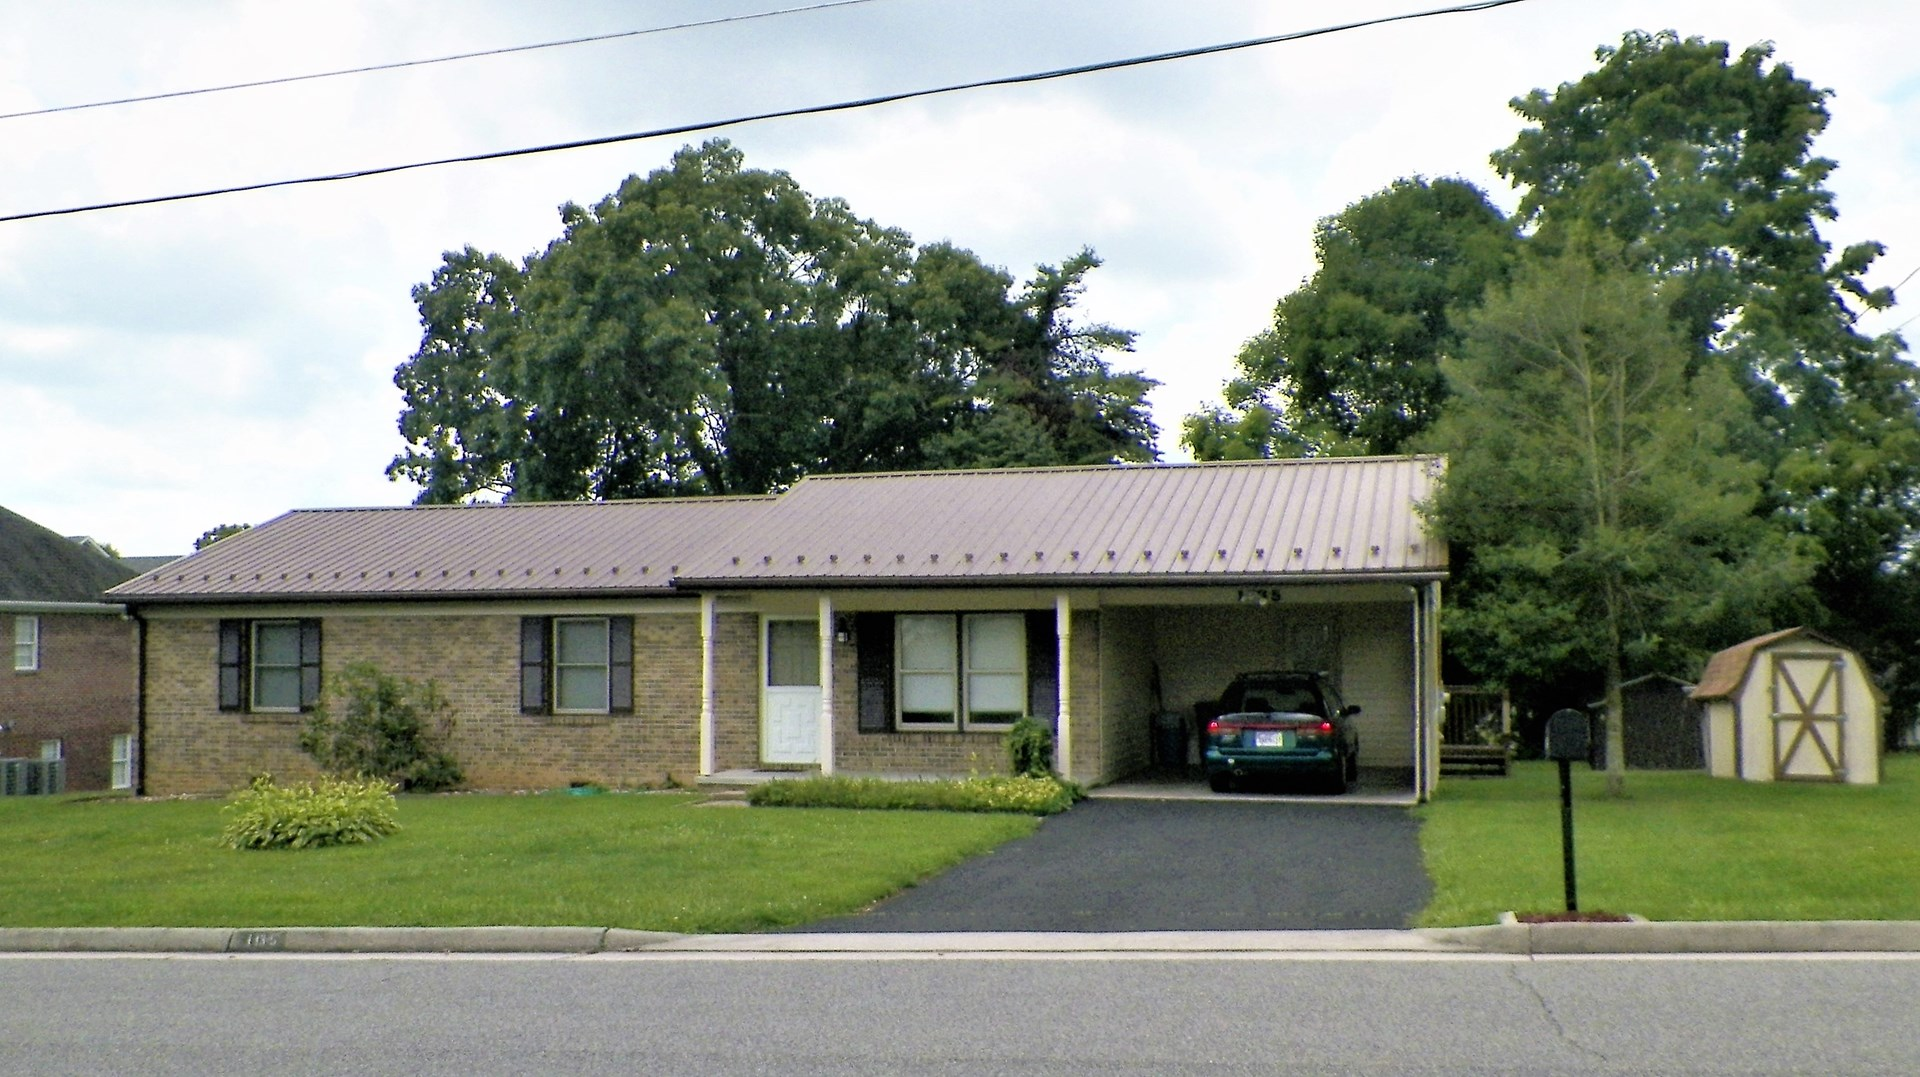 3 BR, 2 BA, Brick Ranch Home For Sale In Wytheville, VA